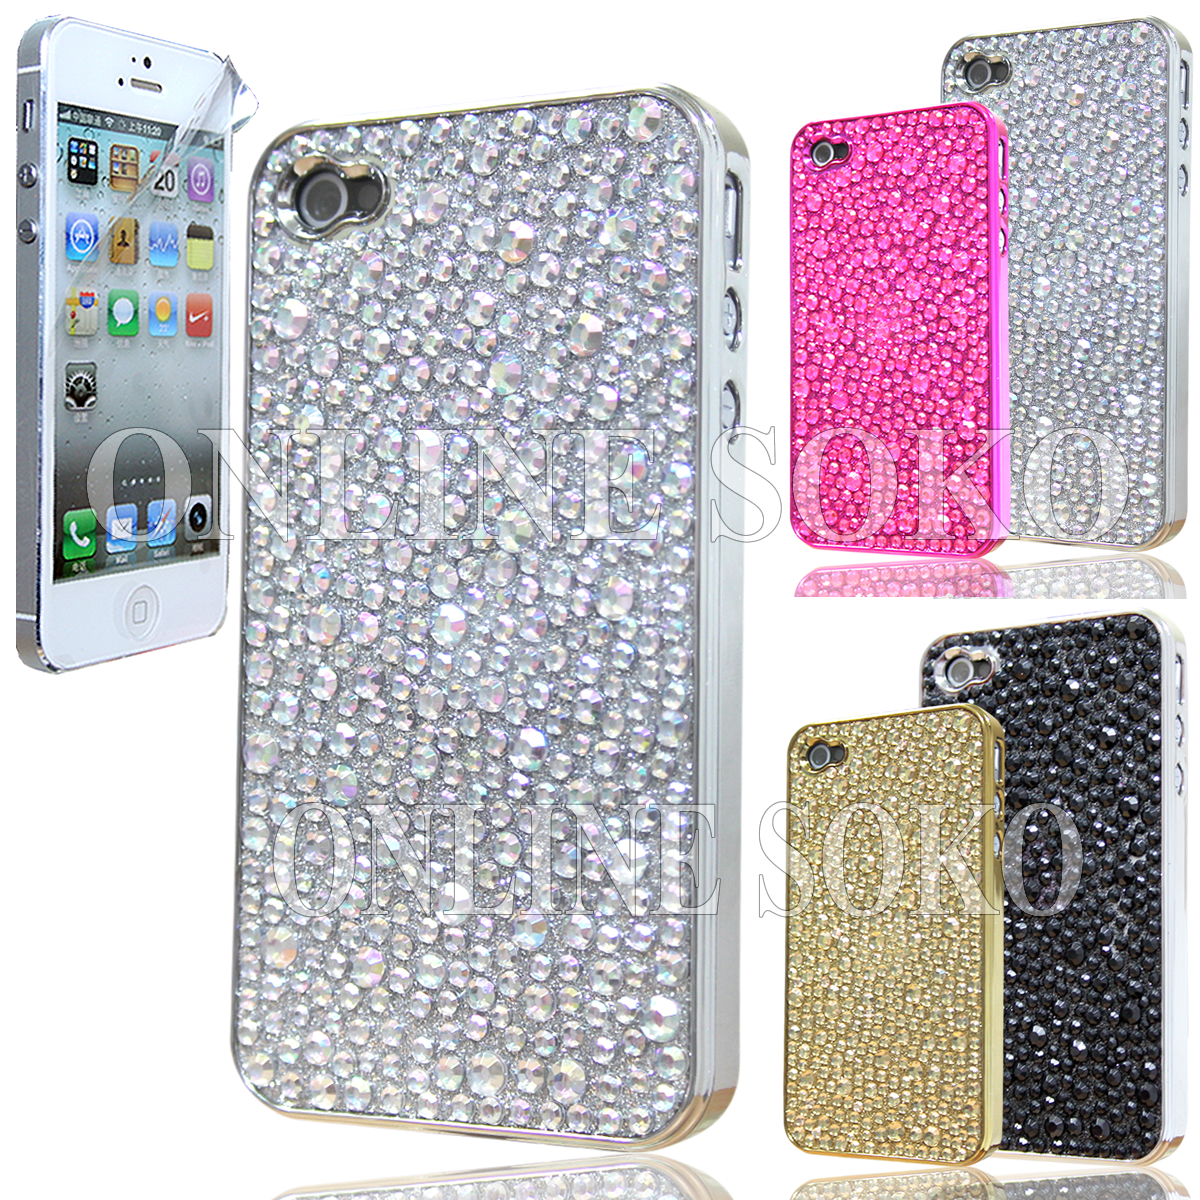 Iphone 5 Cases With Bling Wwwpixsharkcom Images